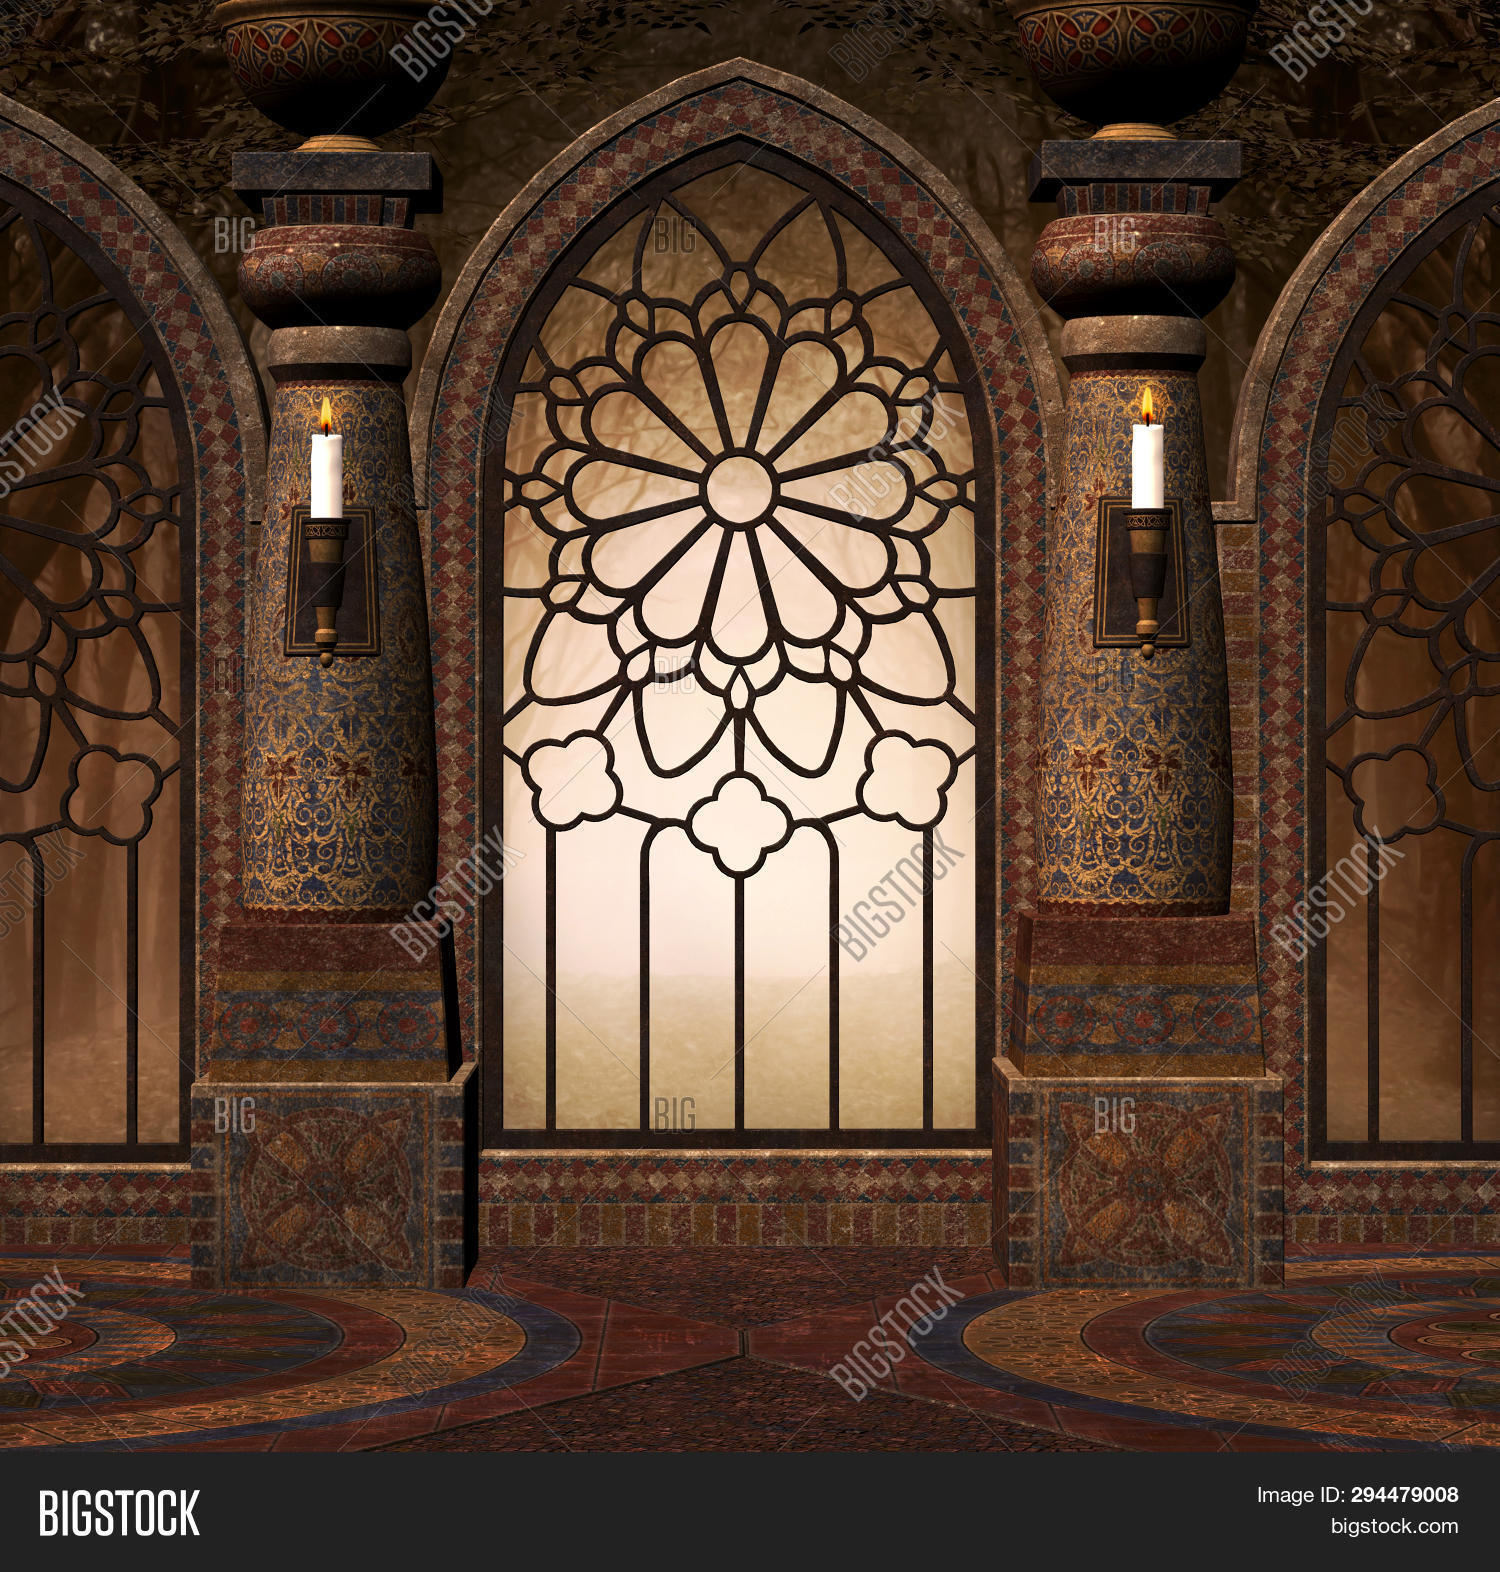 3D,abandoned,ages,ancient,arch,backdrop,backgrounds,building,castle,columns,corridor,dark,door,enchanted,entrance,exit,fairy,fantasy,floor,fog,forest,gateway,gothic,hall,hallway,illustration,indoor,interior,landmark,lanterns,mansion,marble,medieval,middle,mysterious,old,palace,passage,pillars,place,portal,room,ruins,secret,stone,surreal,tale,wall,window